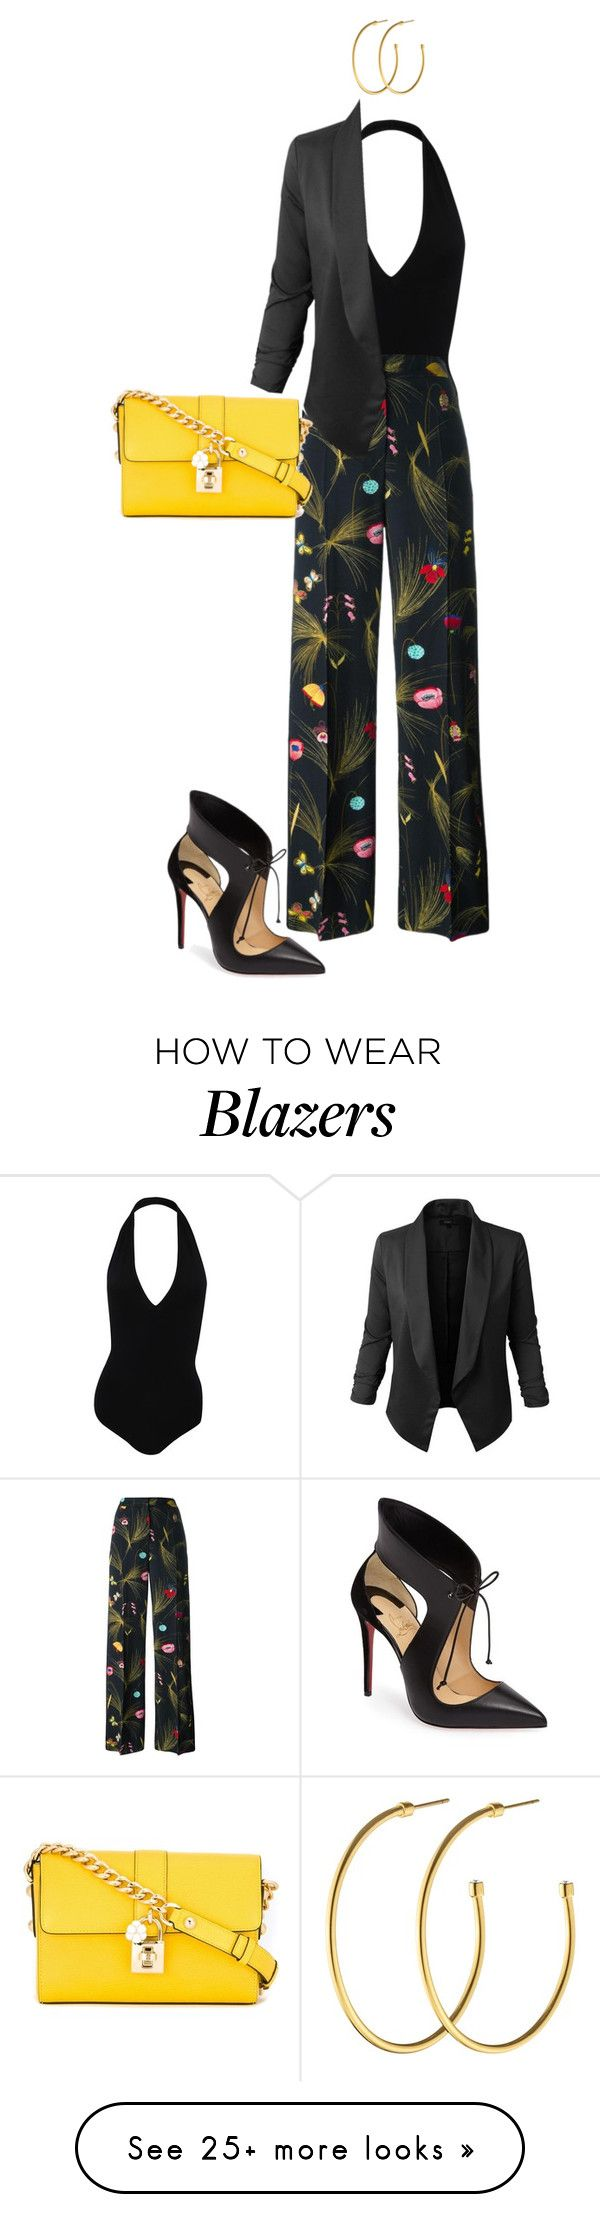 """""""M124"""" by maramrs on Polyvore featuring American Apparel, Christian Louboutin, Fendi, Jupe de Abby, Dyrberg/Kern and Dolce&Gabbana"""